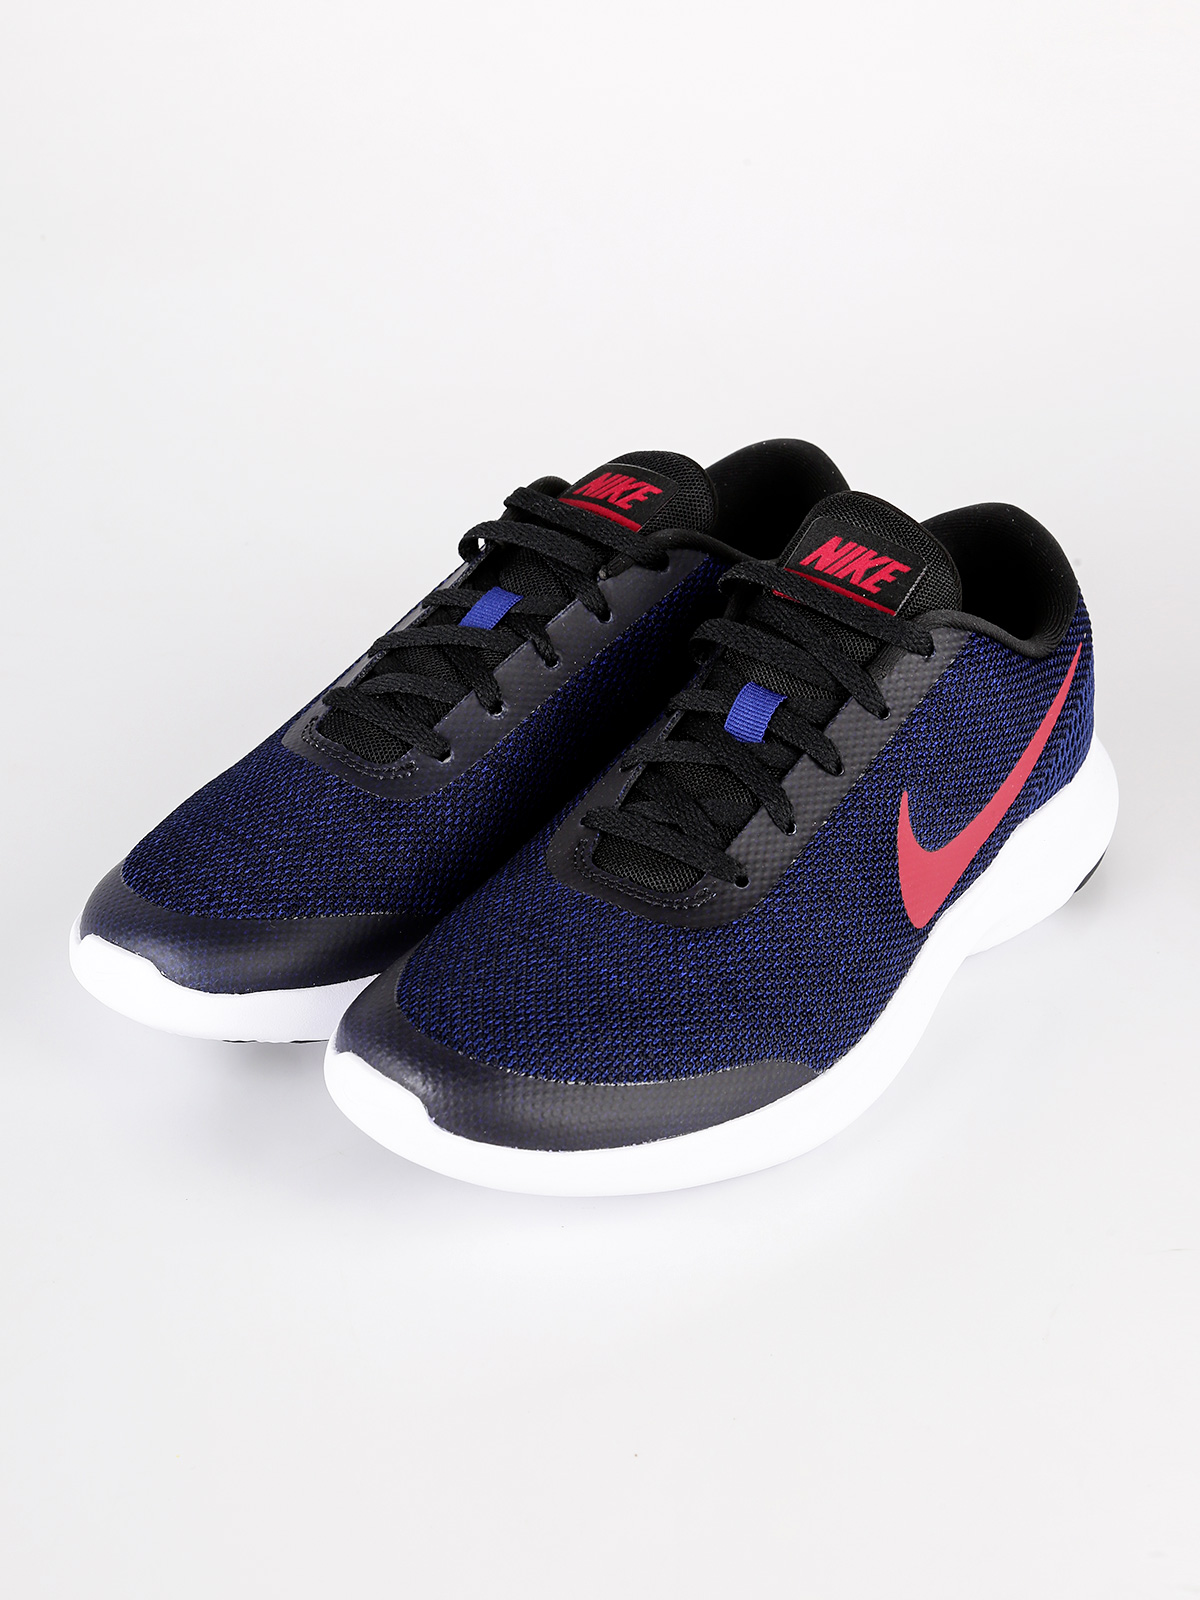 NIKE man's net ventilated shoelace running sports shoes casual shoes